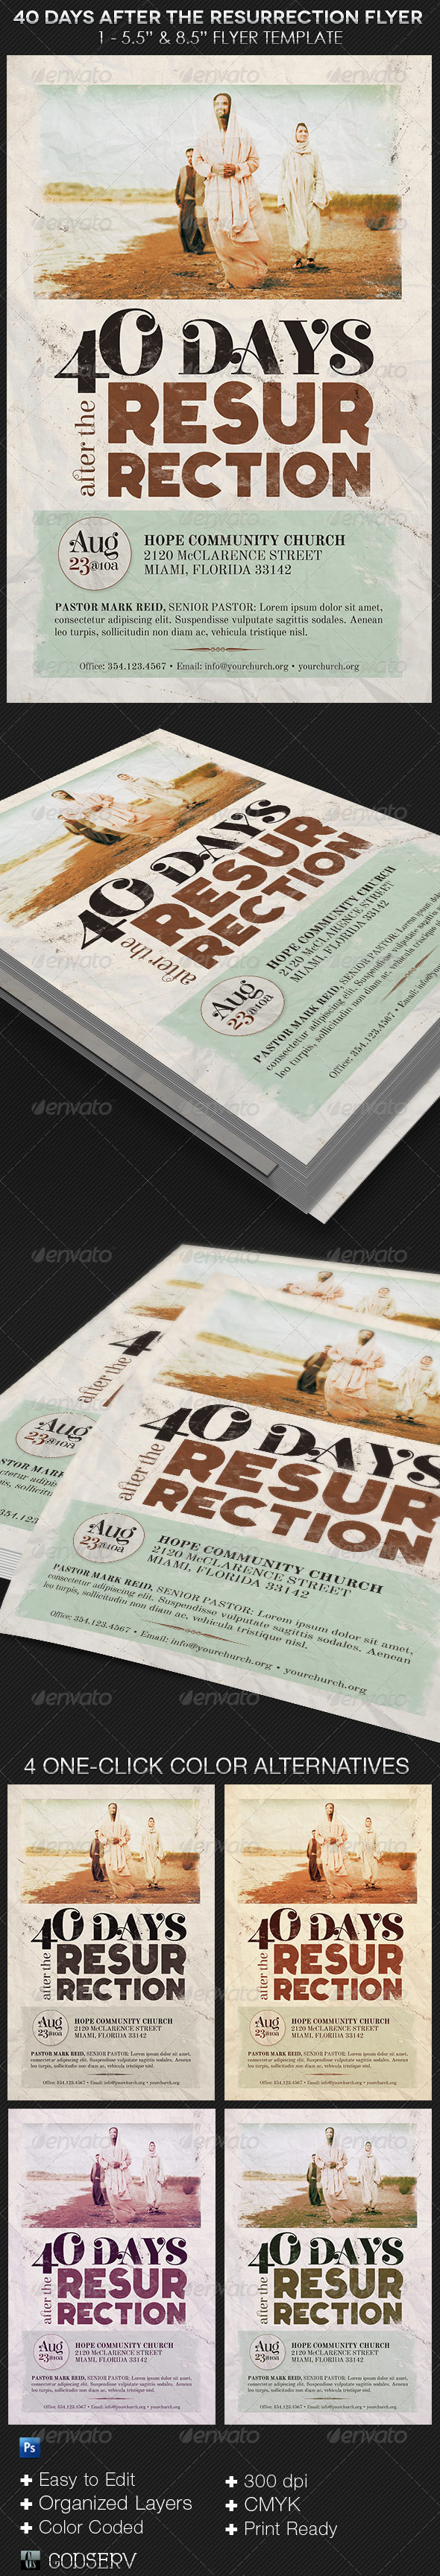 GraphicRiver 40 Days After The Resurrection Flyer Template 8639813